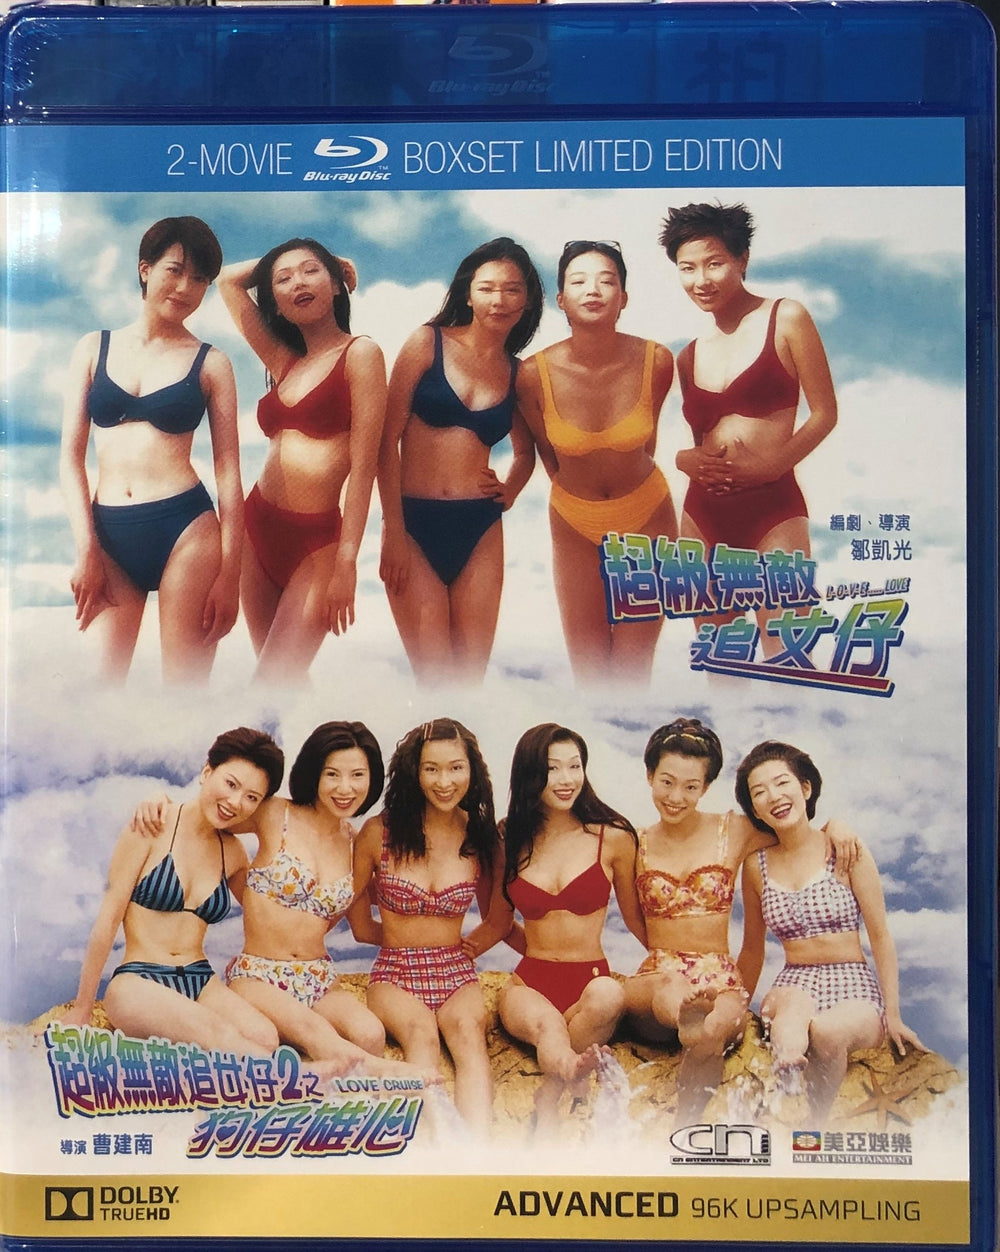 Love Love + Love Love 2 超級無敵追女仔 1997 (Hong Kong Movie) BLU-RAY with English Sub (Region Free)